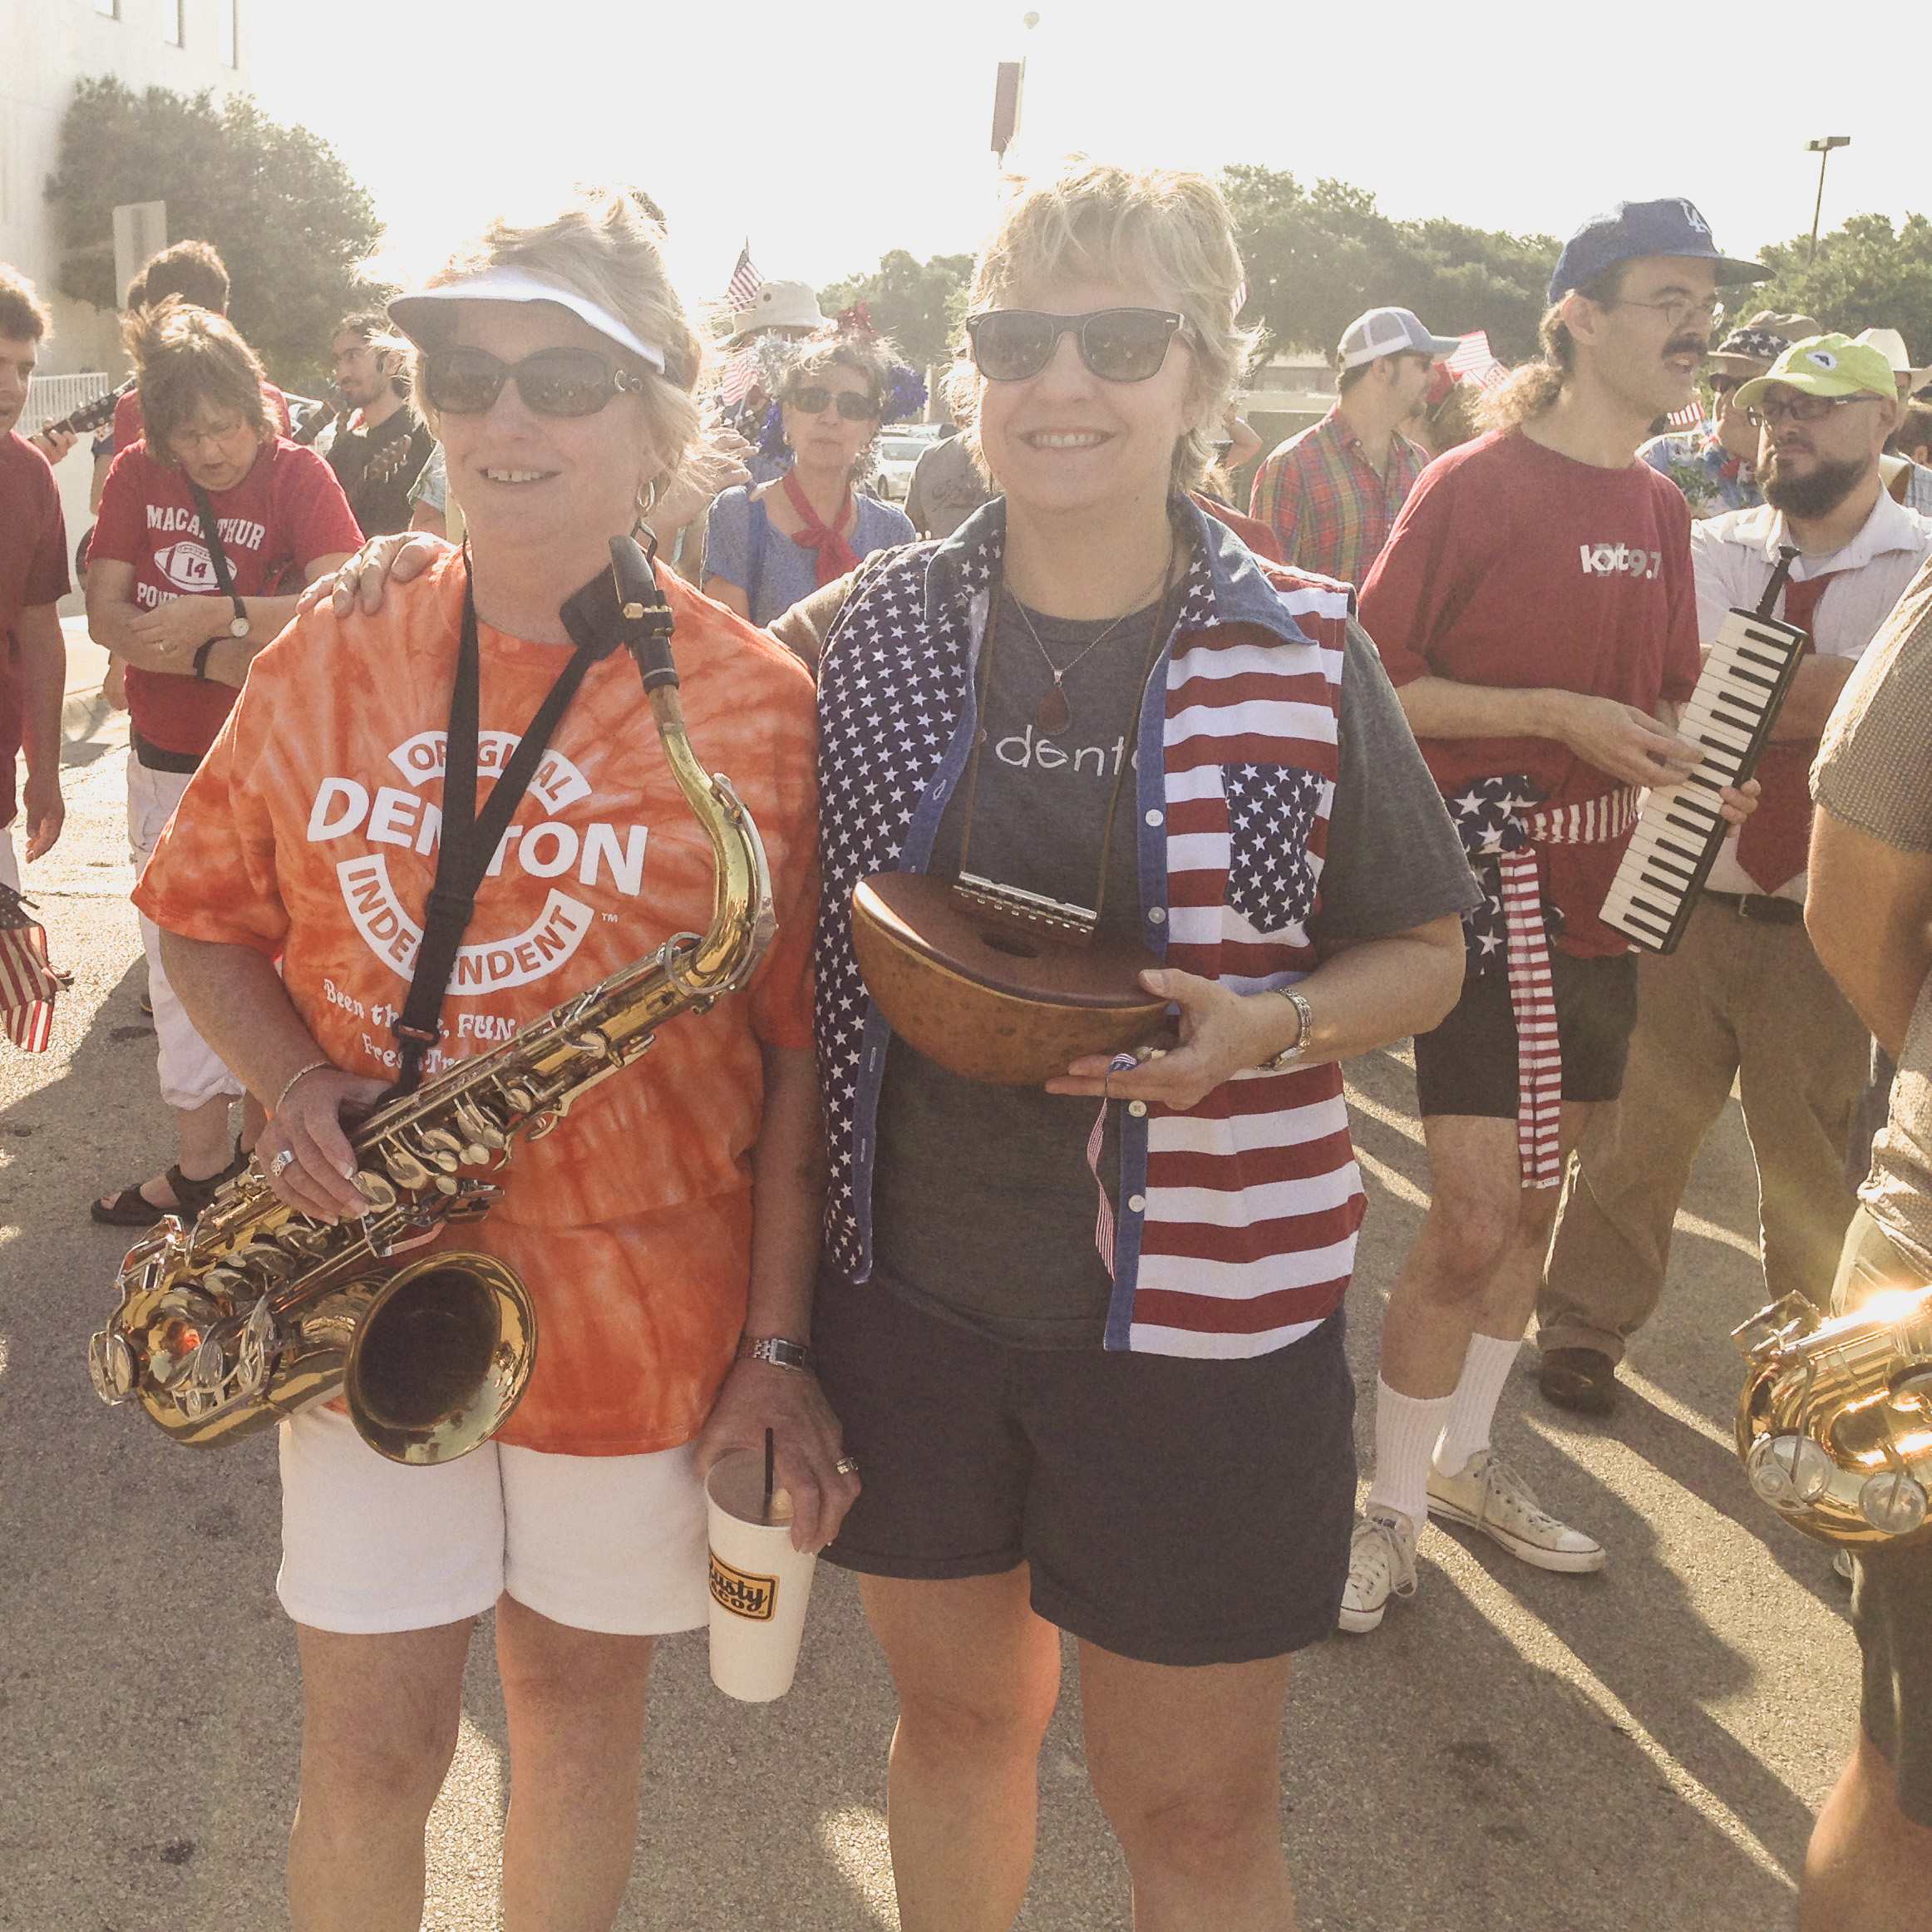 Several gathered, instruments in hand, to hang out before marching and playing wonderful cacophonousmusic together.